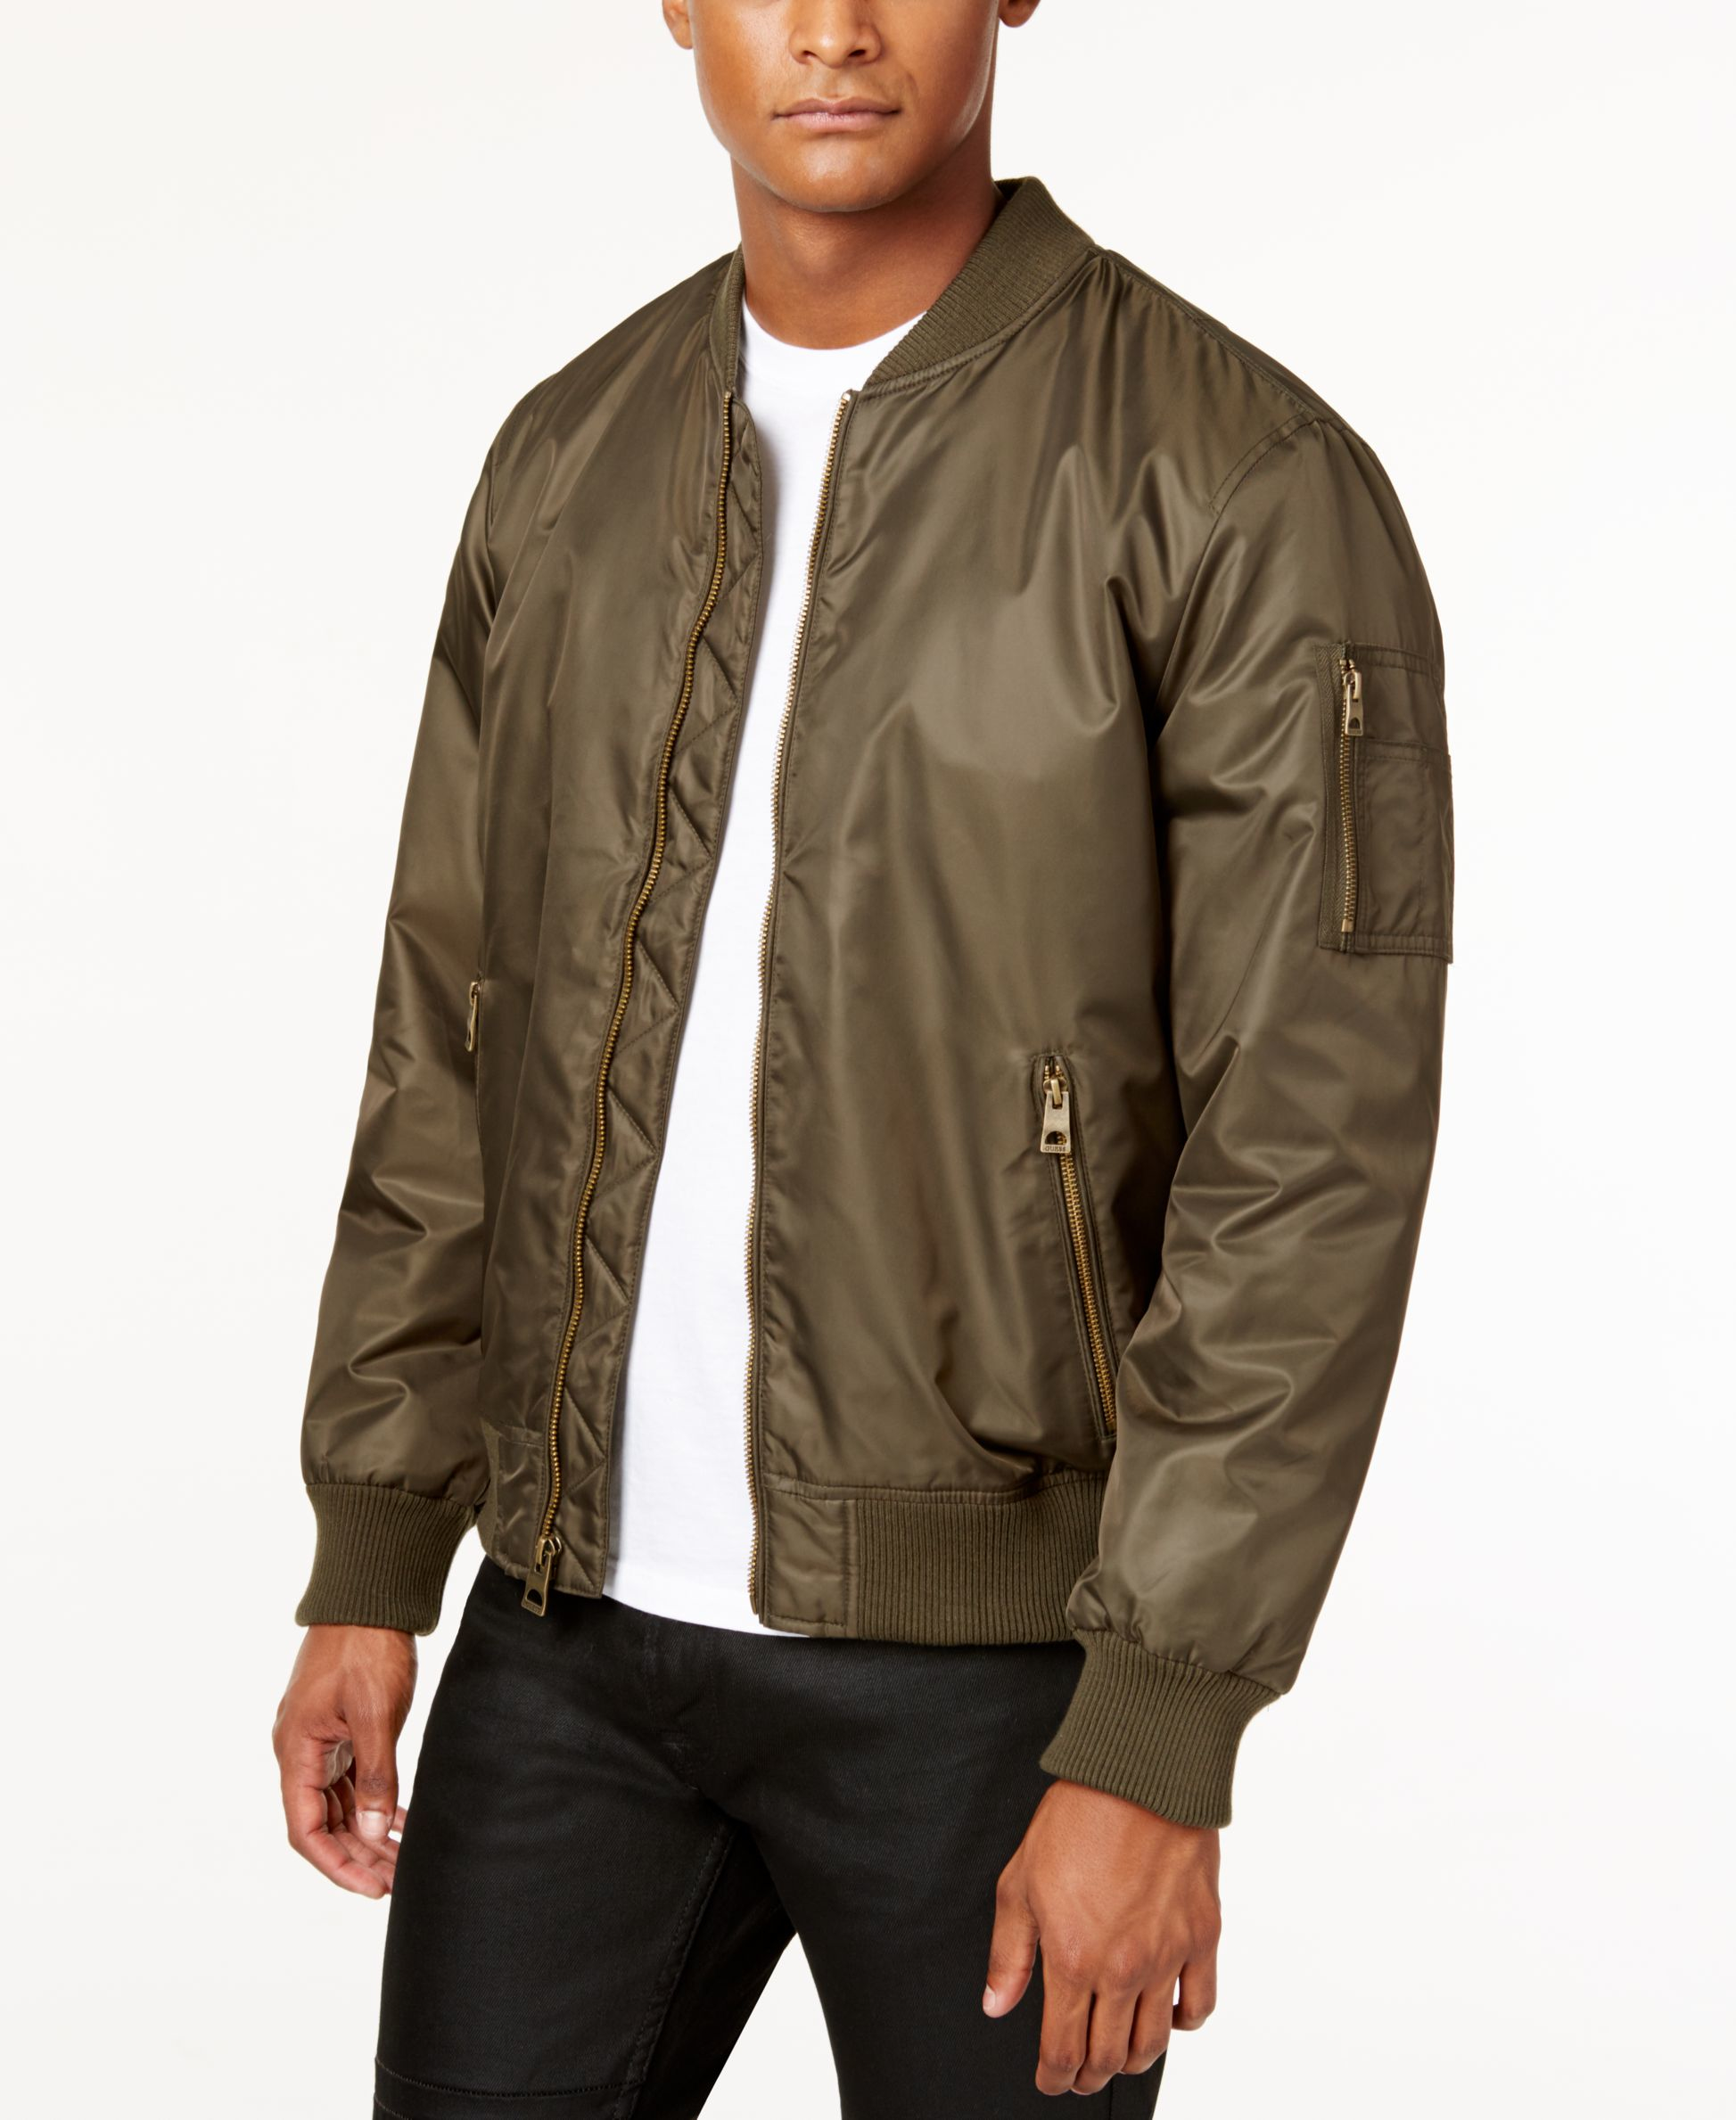 Guess Men's Classic Bomber Jacket in Multicolor for Men